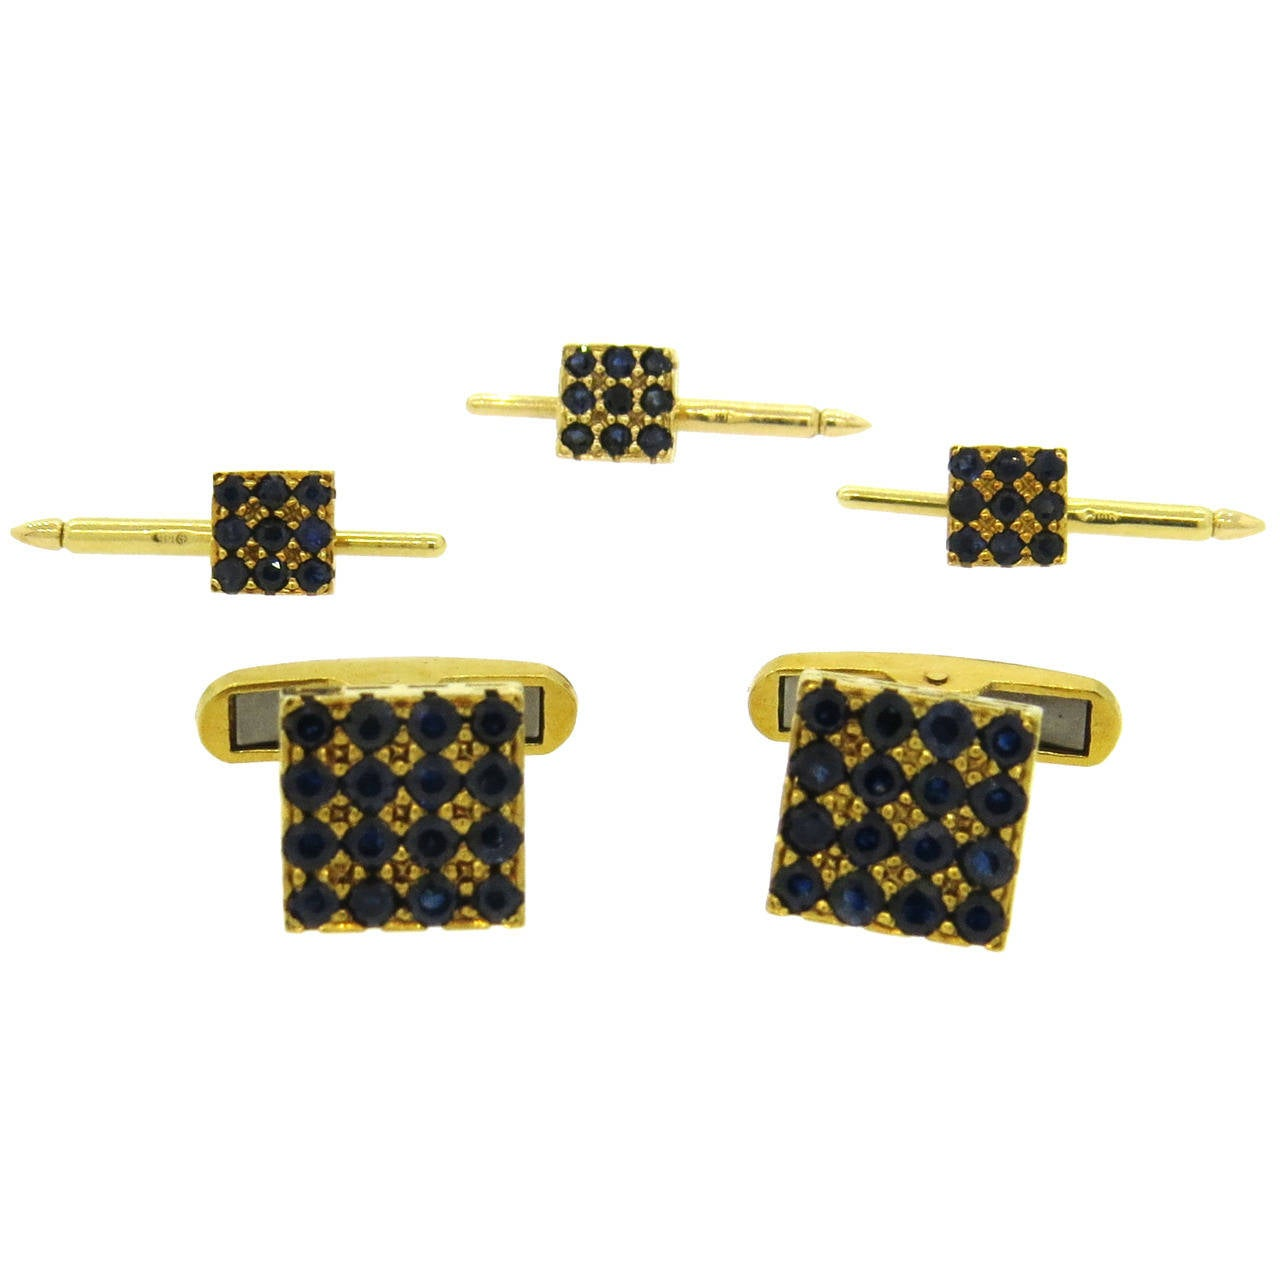 1960s Sapphire Gold Cufflinks Stud Dress Set 1